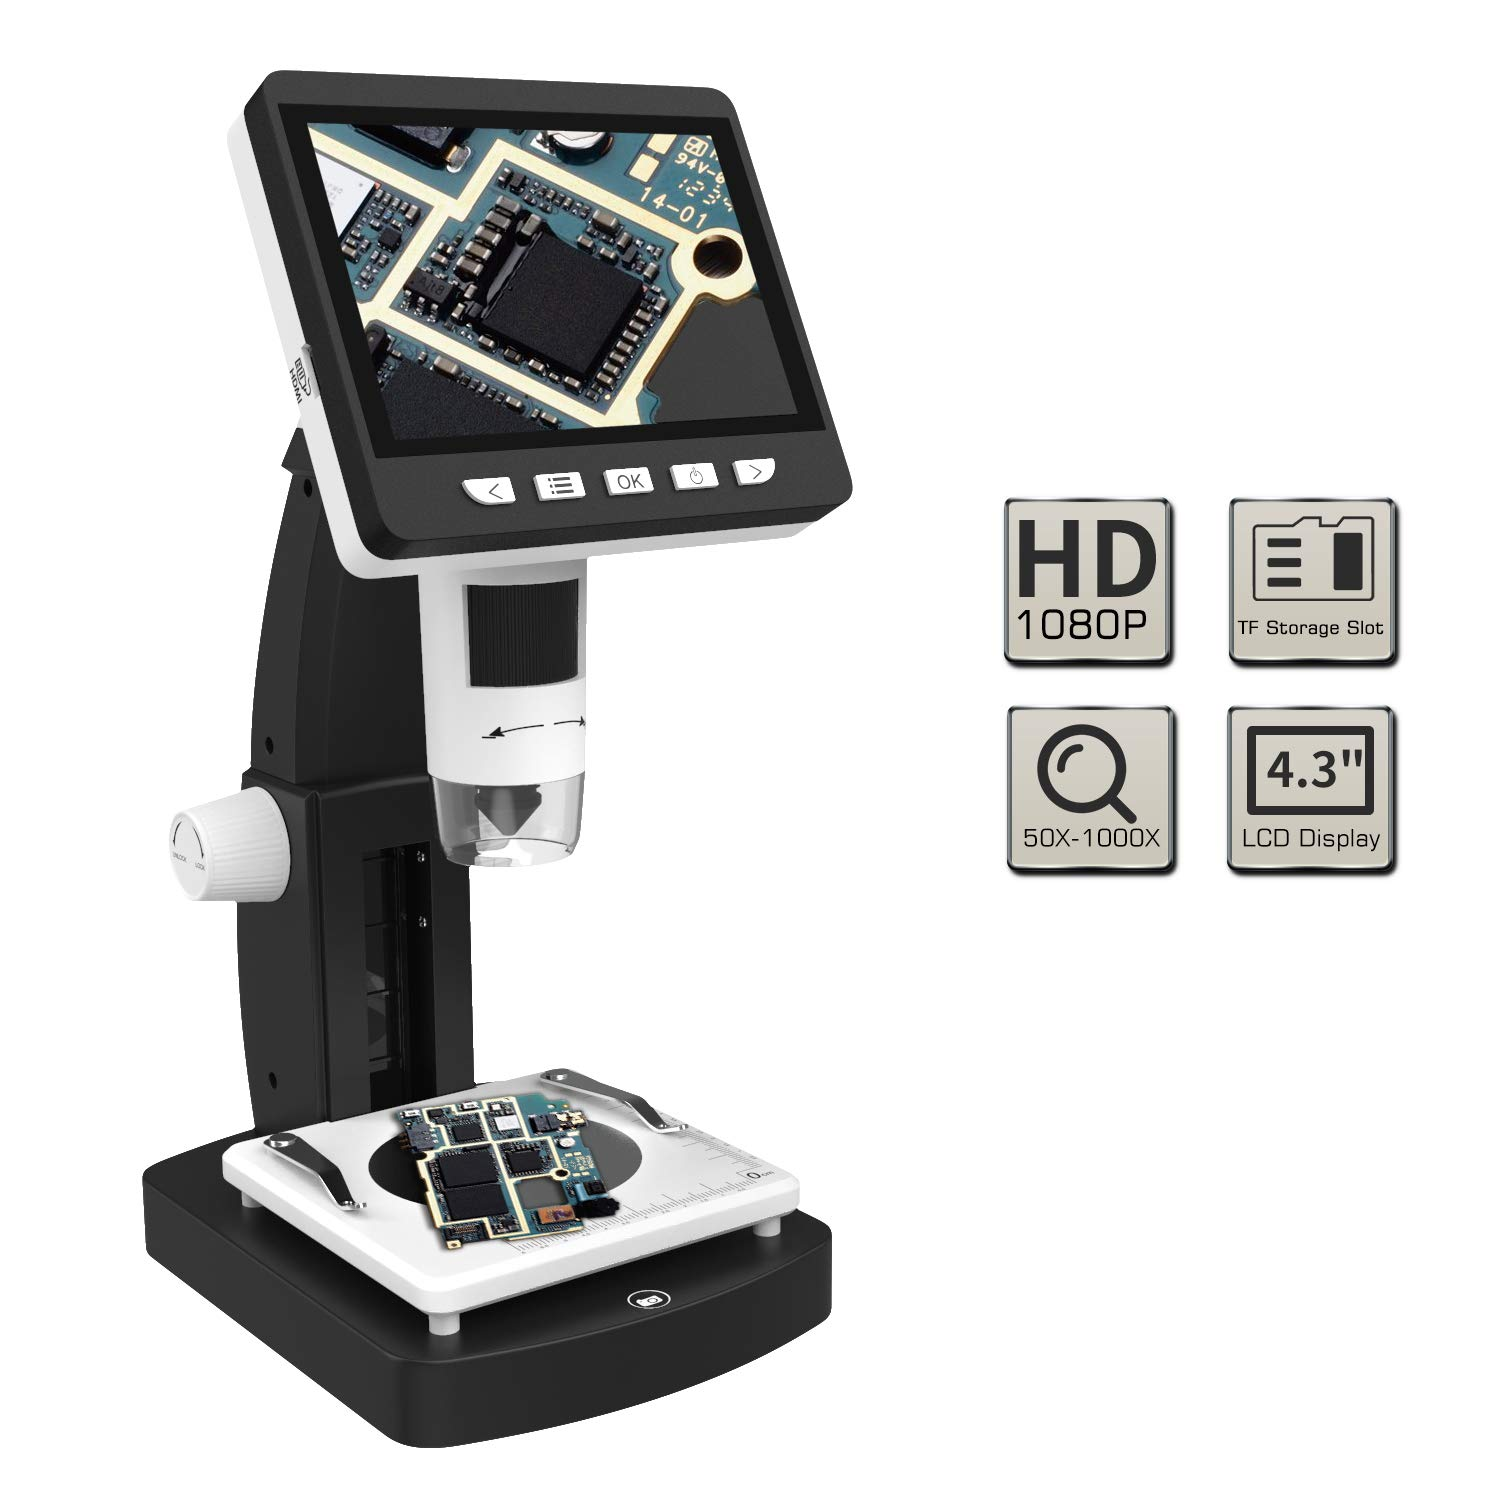 MoKo USB LCD Digital Microscope with 2M HD Image Sensor, 50x-1000x Magnification, 4.3' TFT Display, 8 LED, Camera Video Recorder, Rechargeable Battery, Support Windows & Mac PC - Black & White 4.3 TFT Display